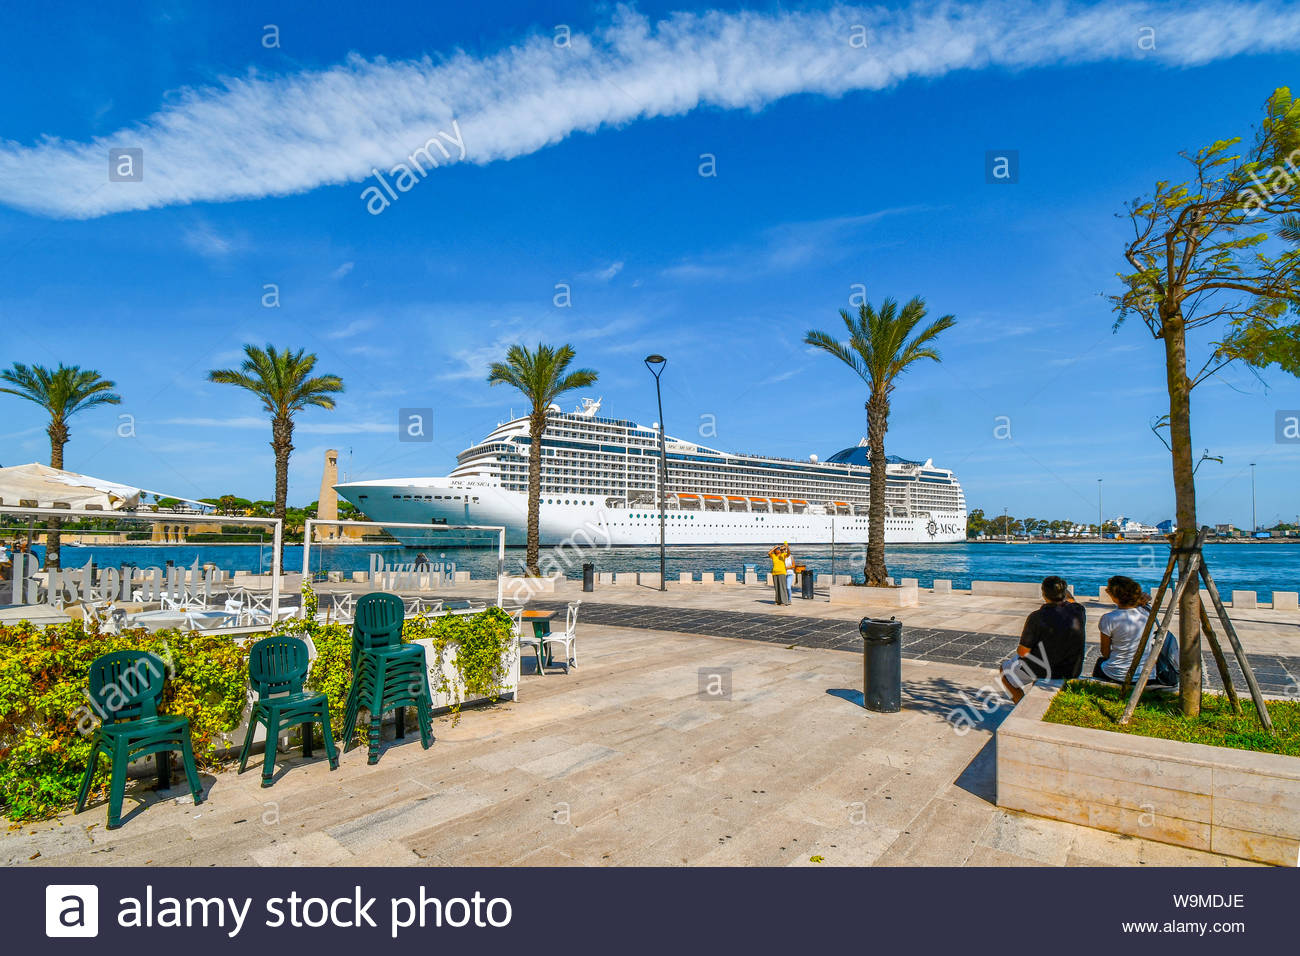 Tourists watch as a massive cruise ship pulls into the narrow port on the Adriatic Sea in the mediterranean city of Brindisi, Italy - Stock Photo